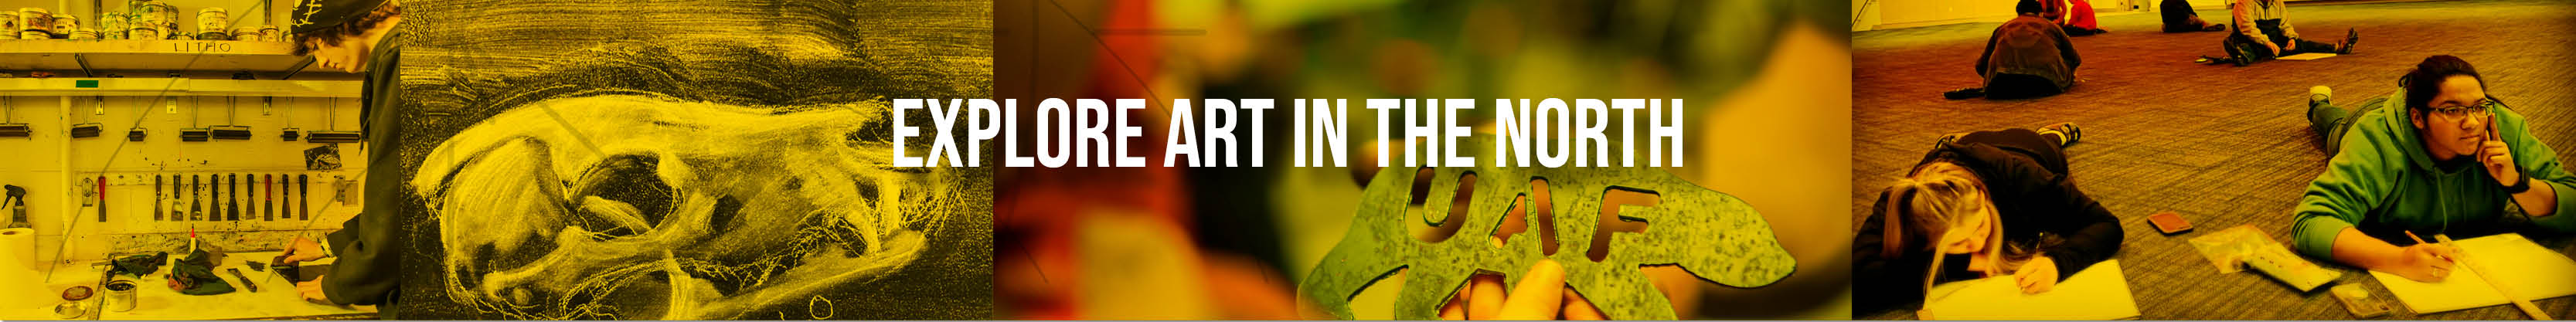 Explore the boundaries of your creativity. Study Art in the North.